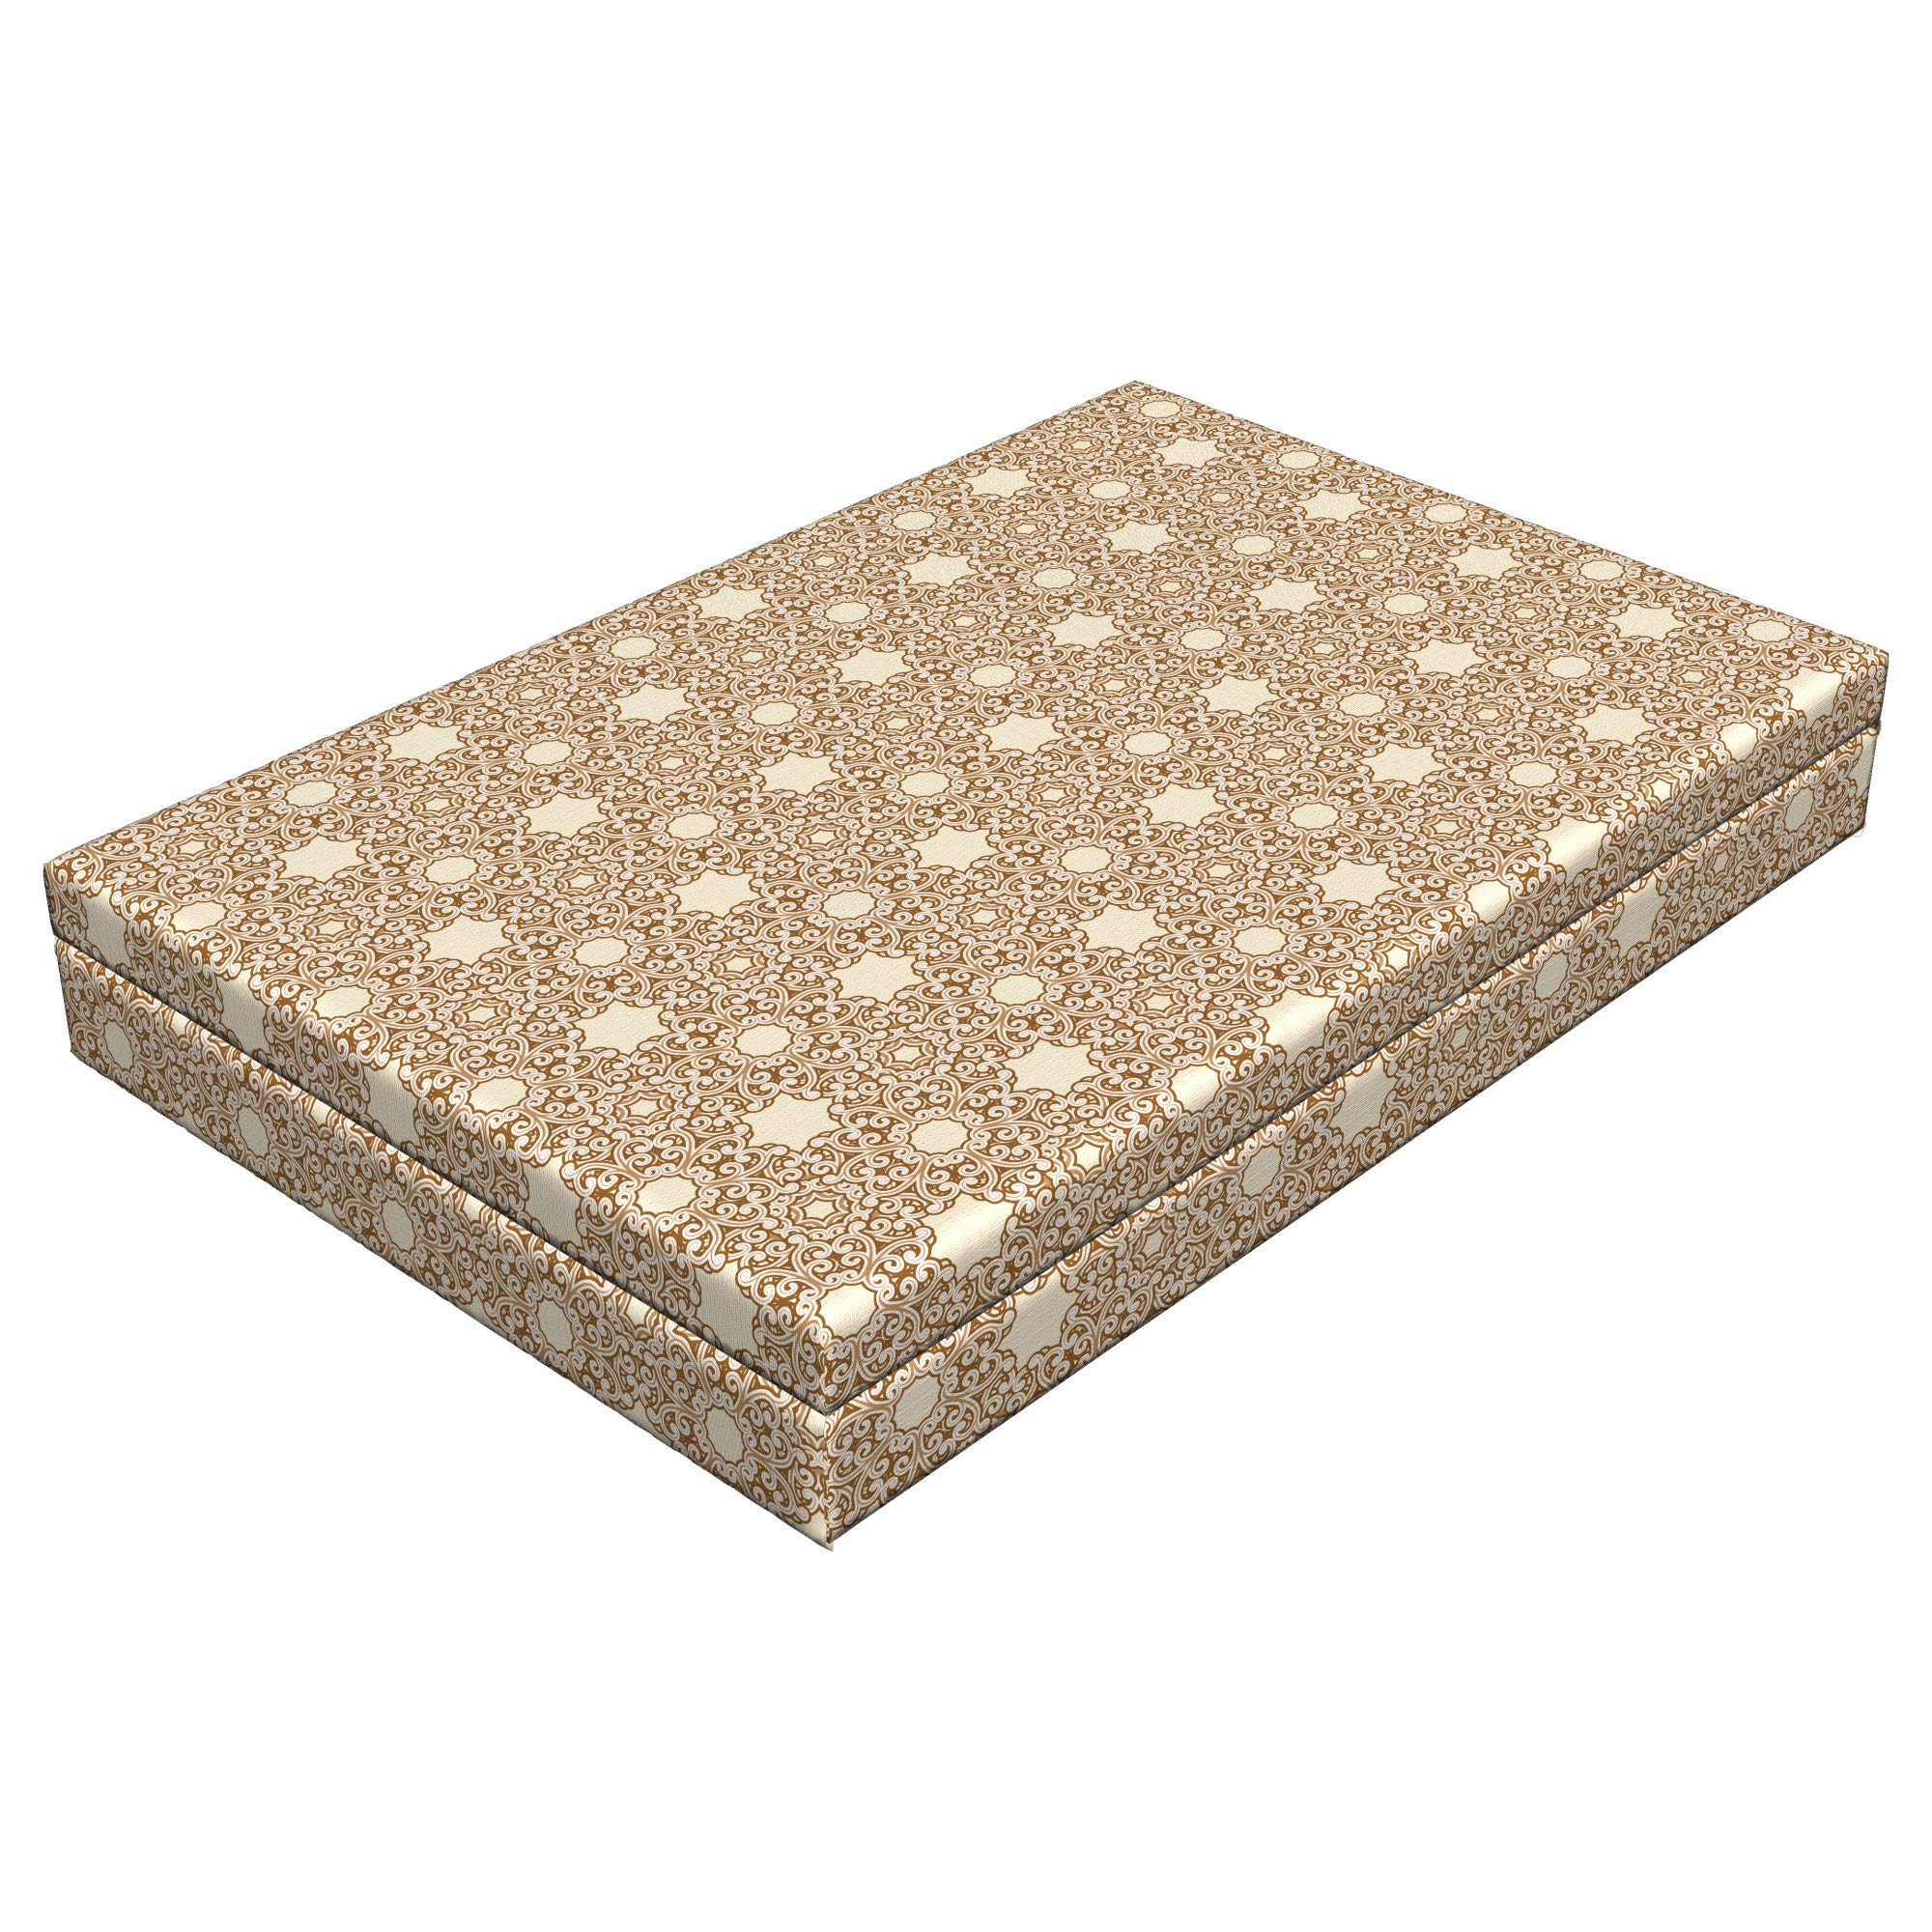 Lunarable Etnhic Dog Bed, Arabesque Motifs of Eastern Cultures Ornamental Patterned Swirled Lines, Durable Washable Mat with Decorative Fabric Cover, 48'' x 32'' x 6'', Beige Cream Redwood